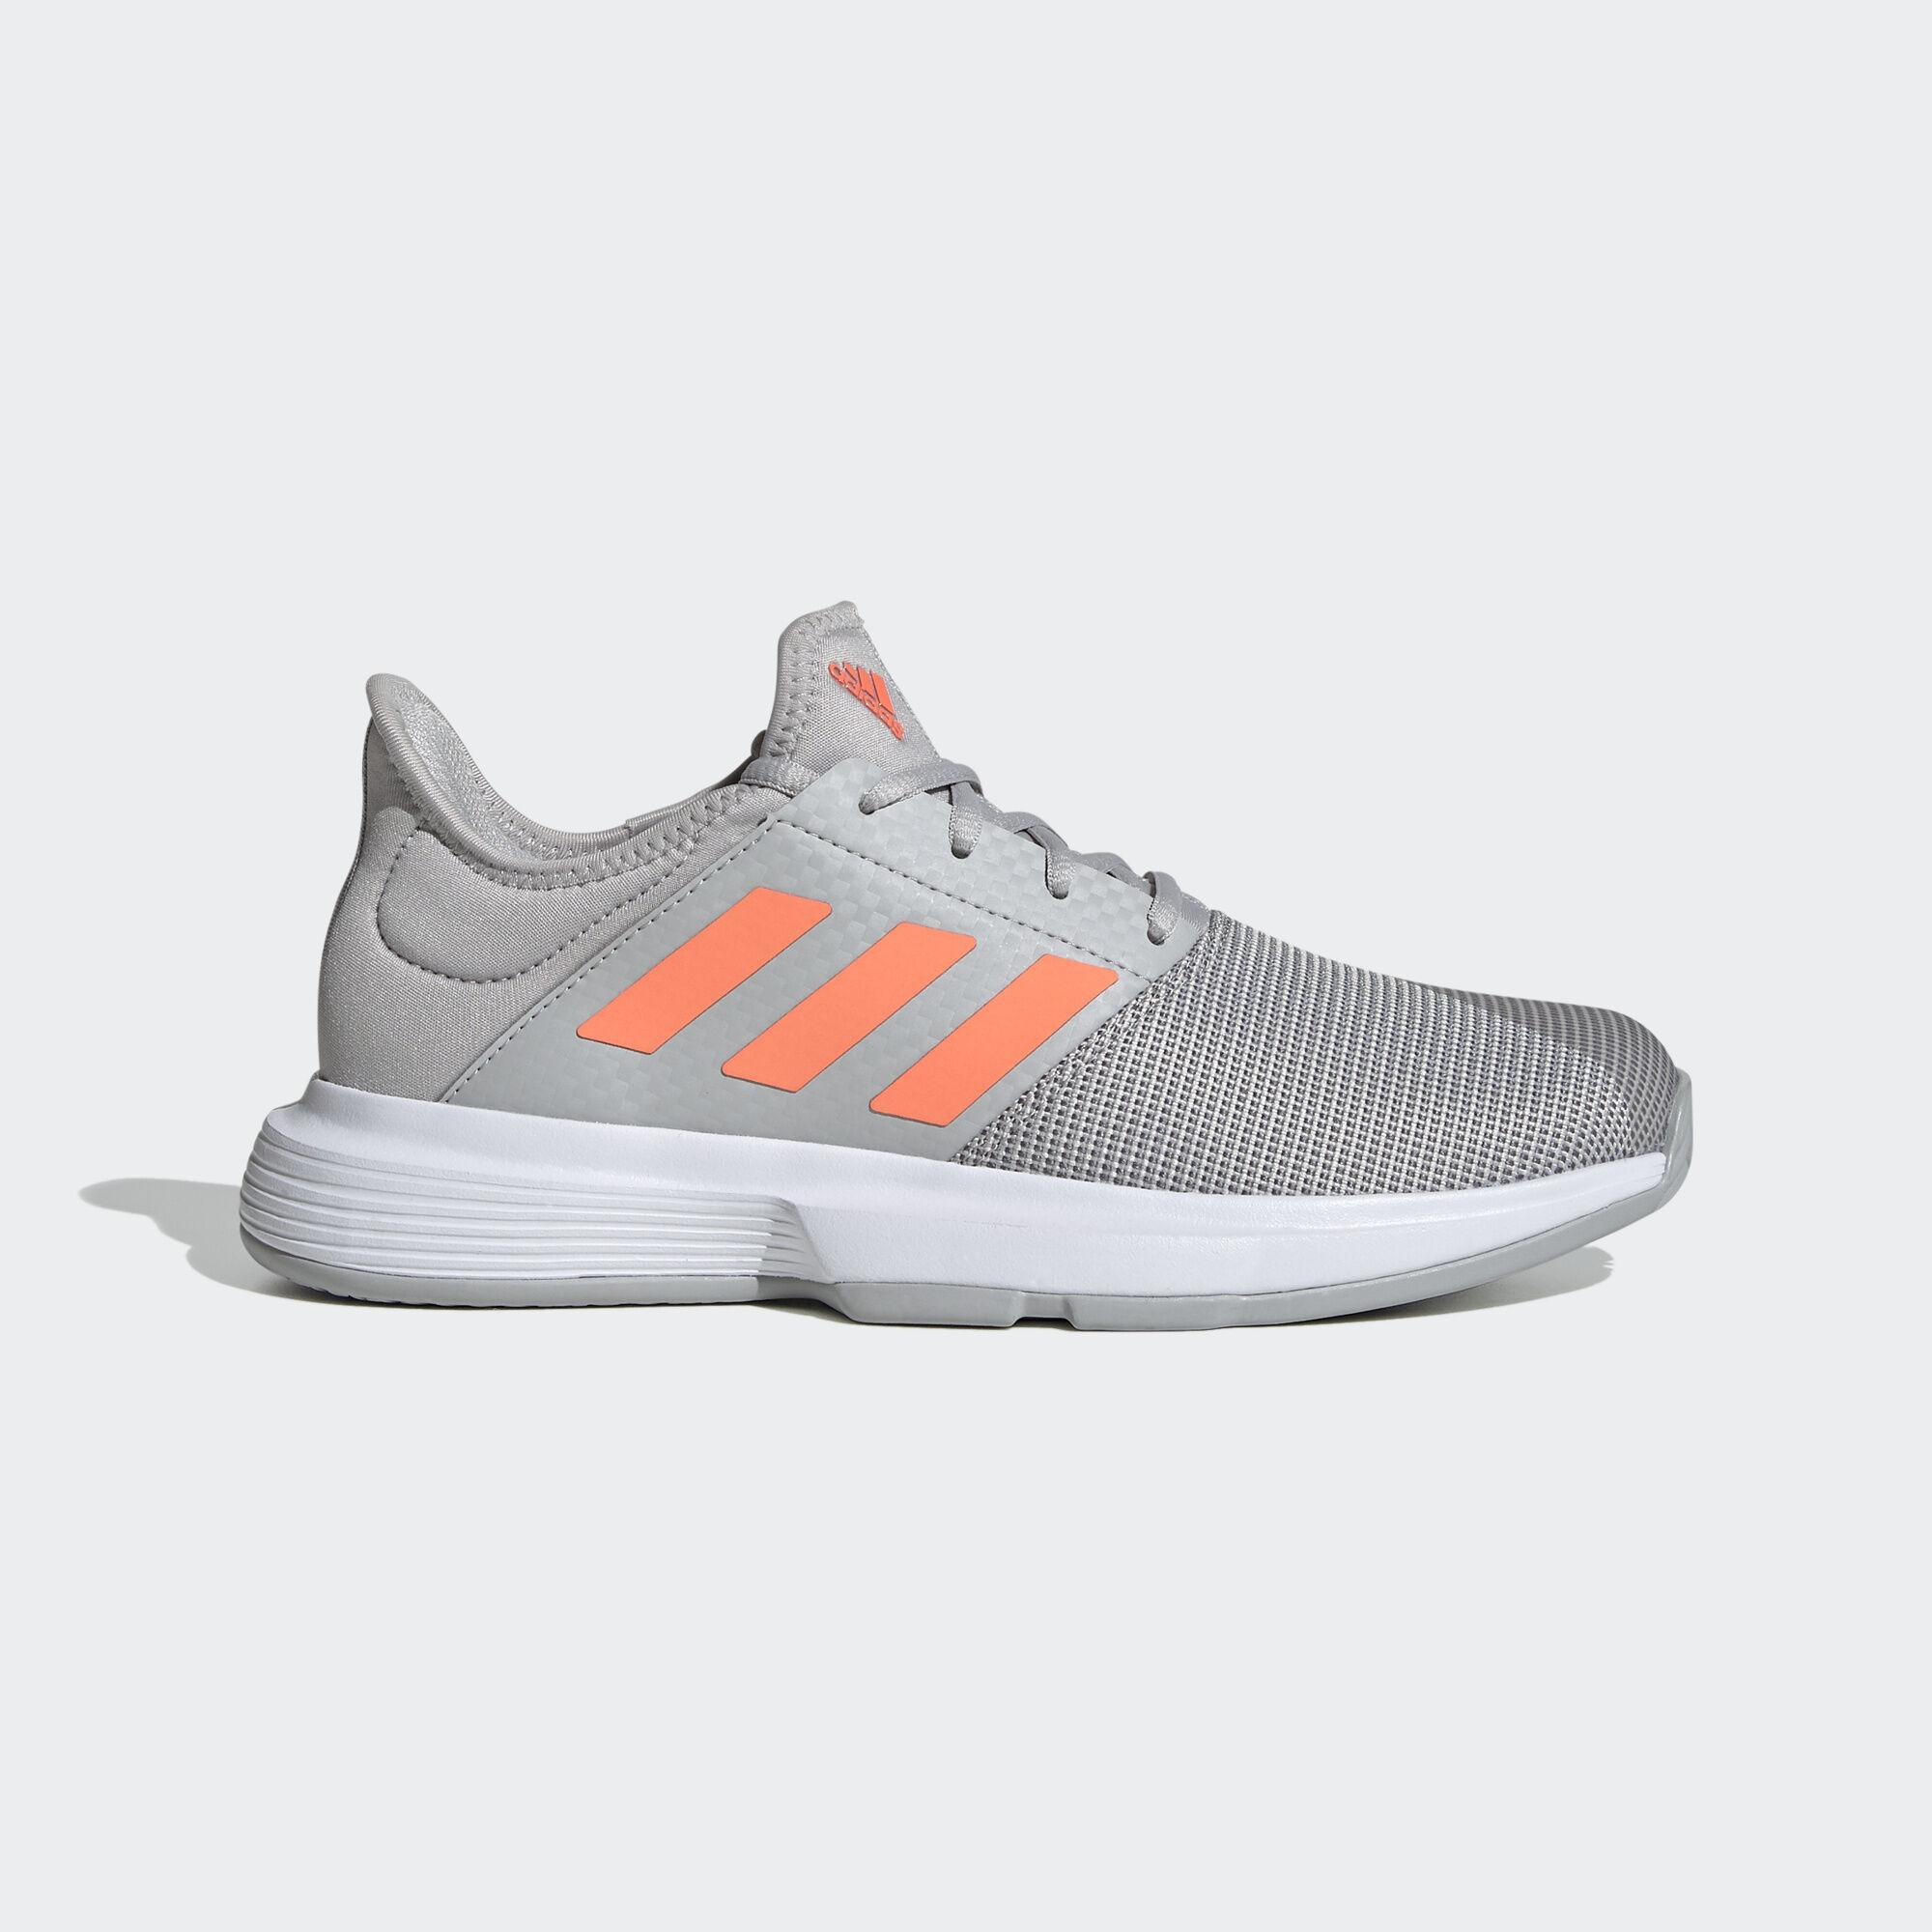 Adidas Womens GameCourt Tennis Shoes - Grey/Coral